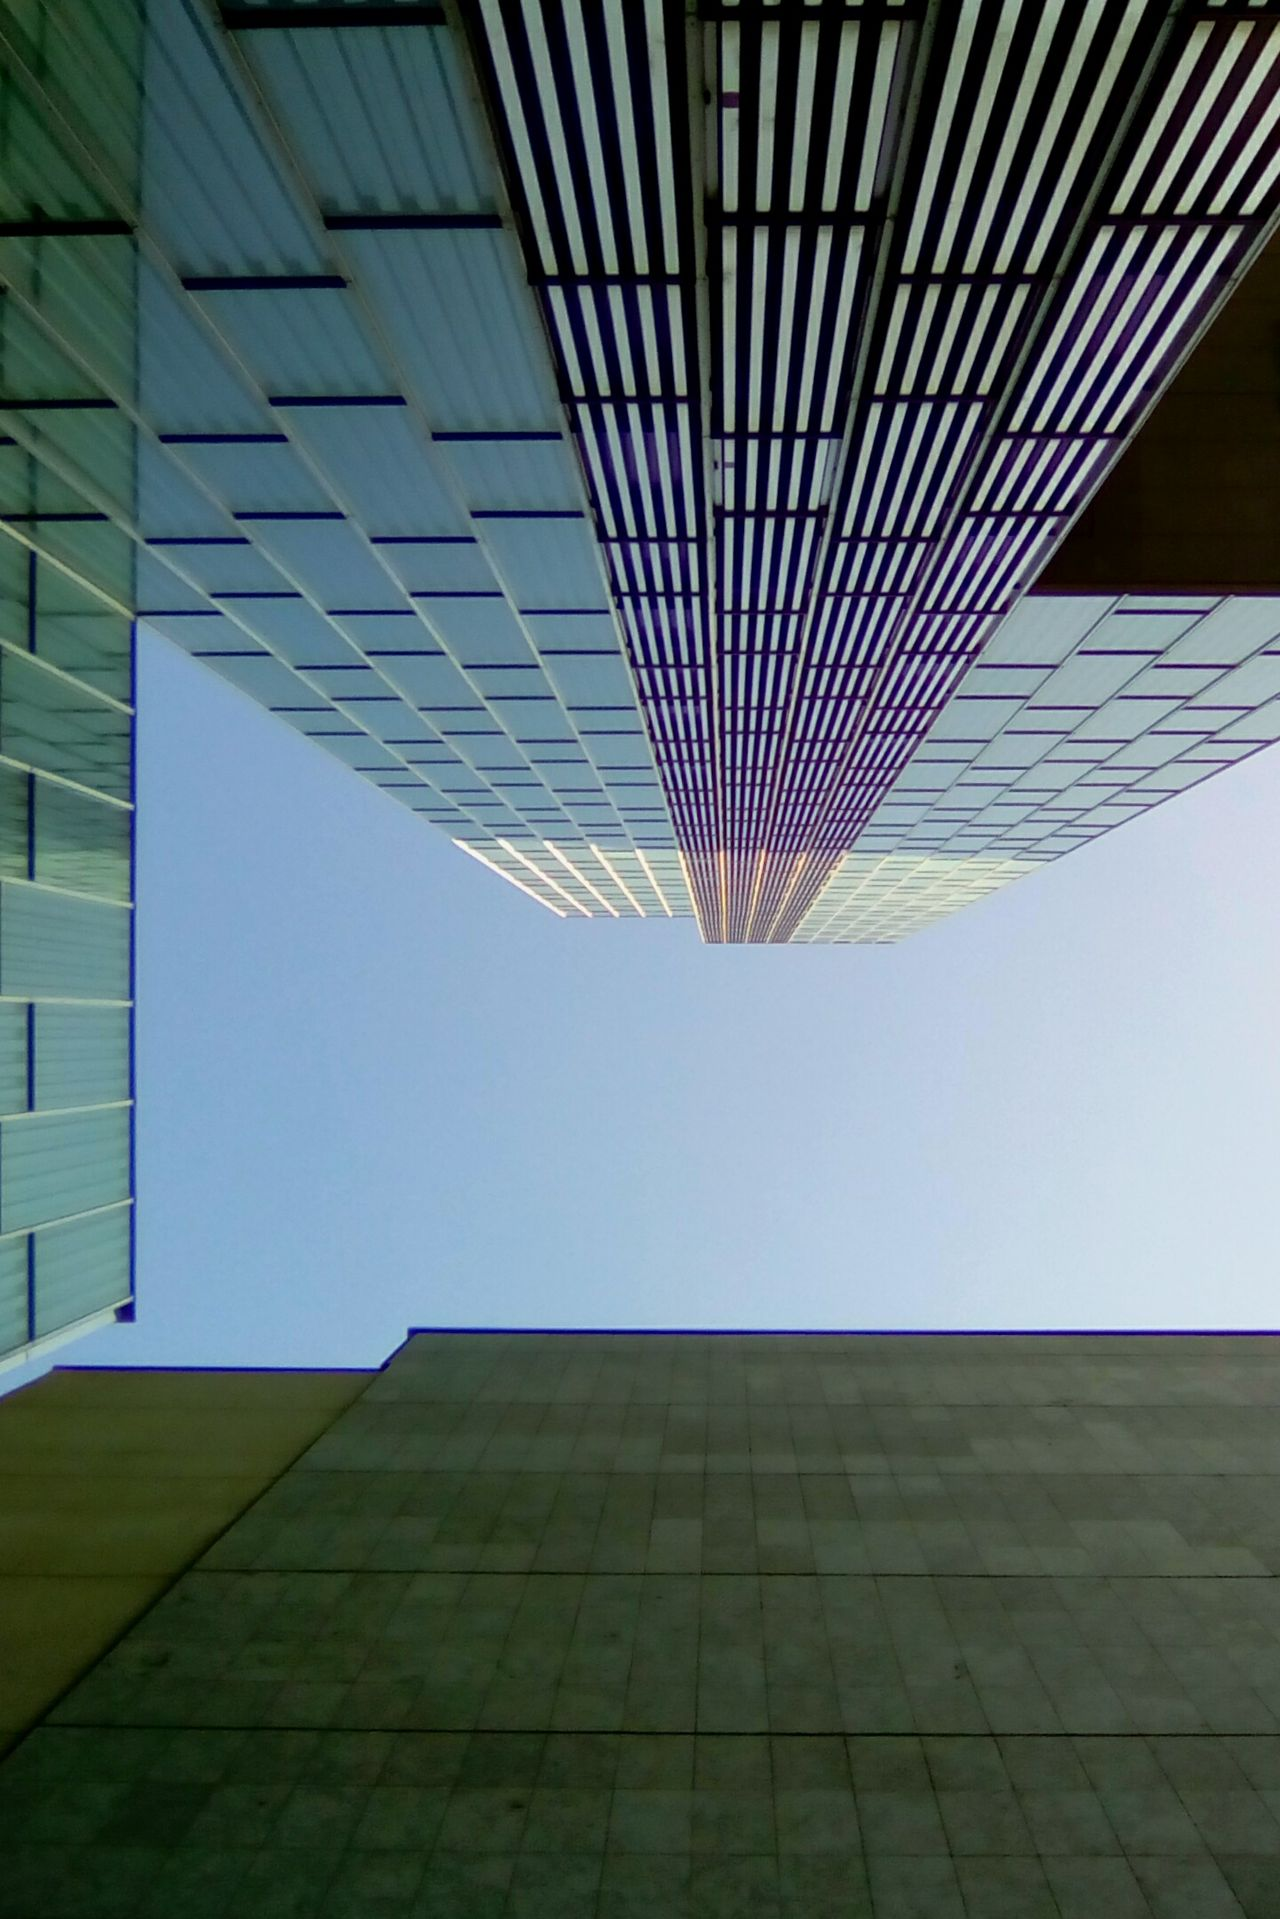 Architecture Skyscraper Built Structure Modern City Building Exterior Outdoors Day No People Cityscape Futuristic Sky Open Edit Things I See Backgrounds High Angle View Color Light And Shadow